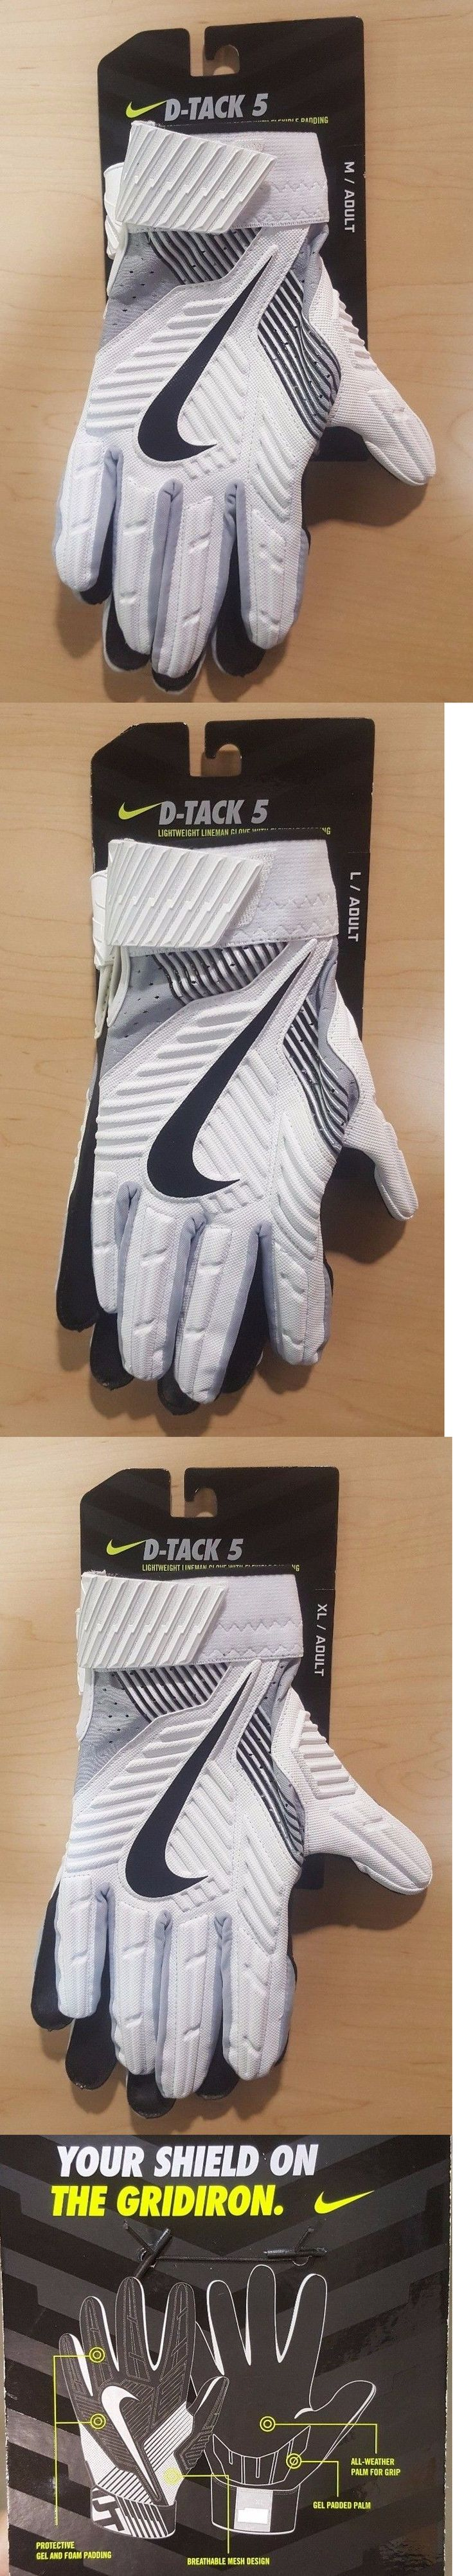 Gloves 159114: 2017 Nike Football D-Tack 5 Lineman Protective Gloves White Black Brand New -> BUY IT NOW ONLY: $64.99 on eBay!